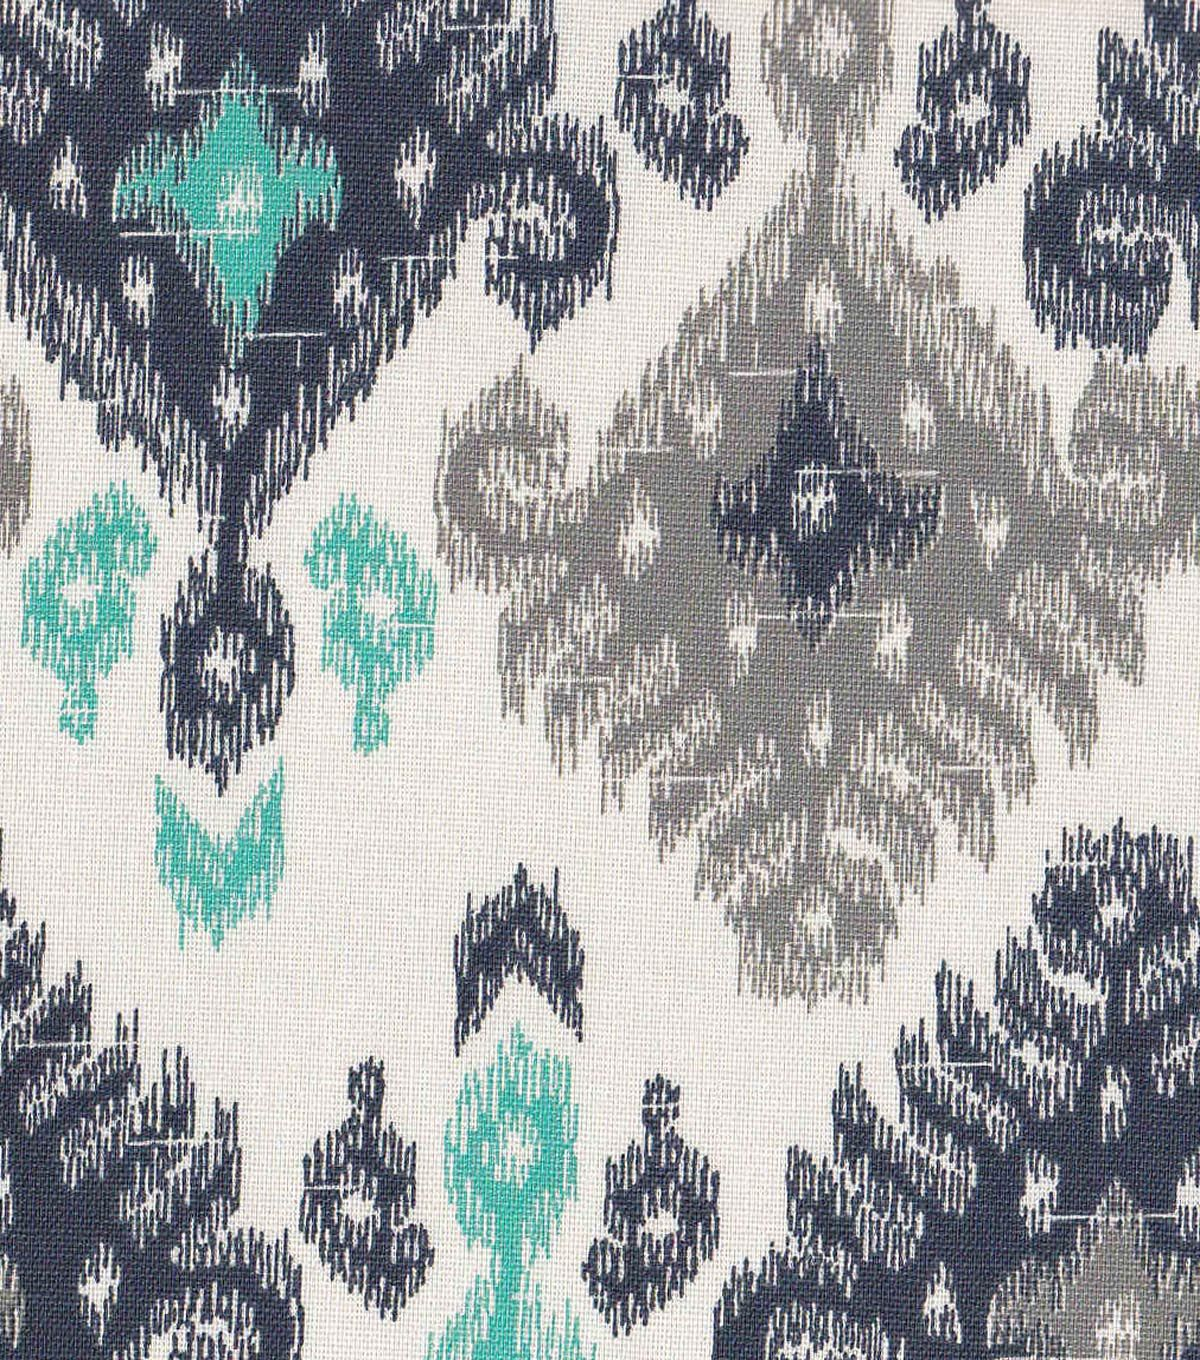 Turquoise ikat chair - 45 Home Essentials Fabric Ikat Navy Turquoise45 Home Essentials Fabric